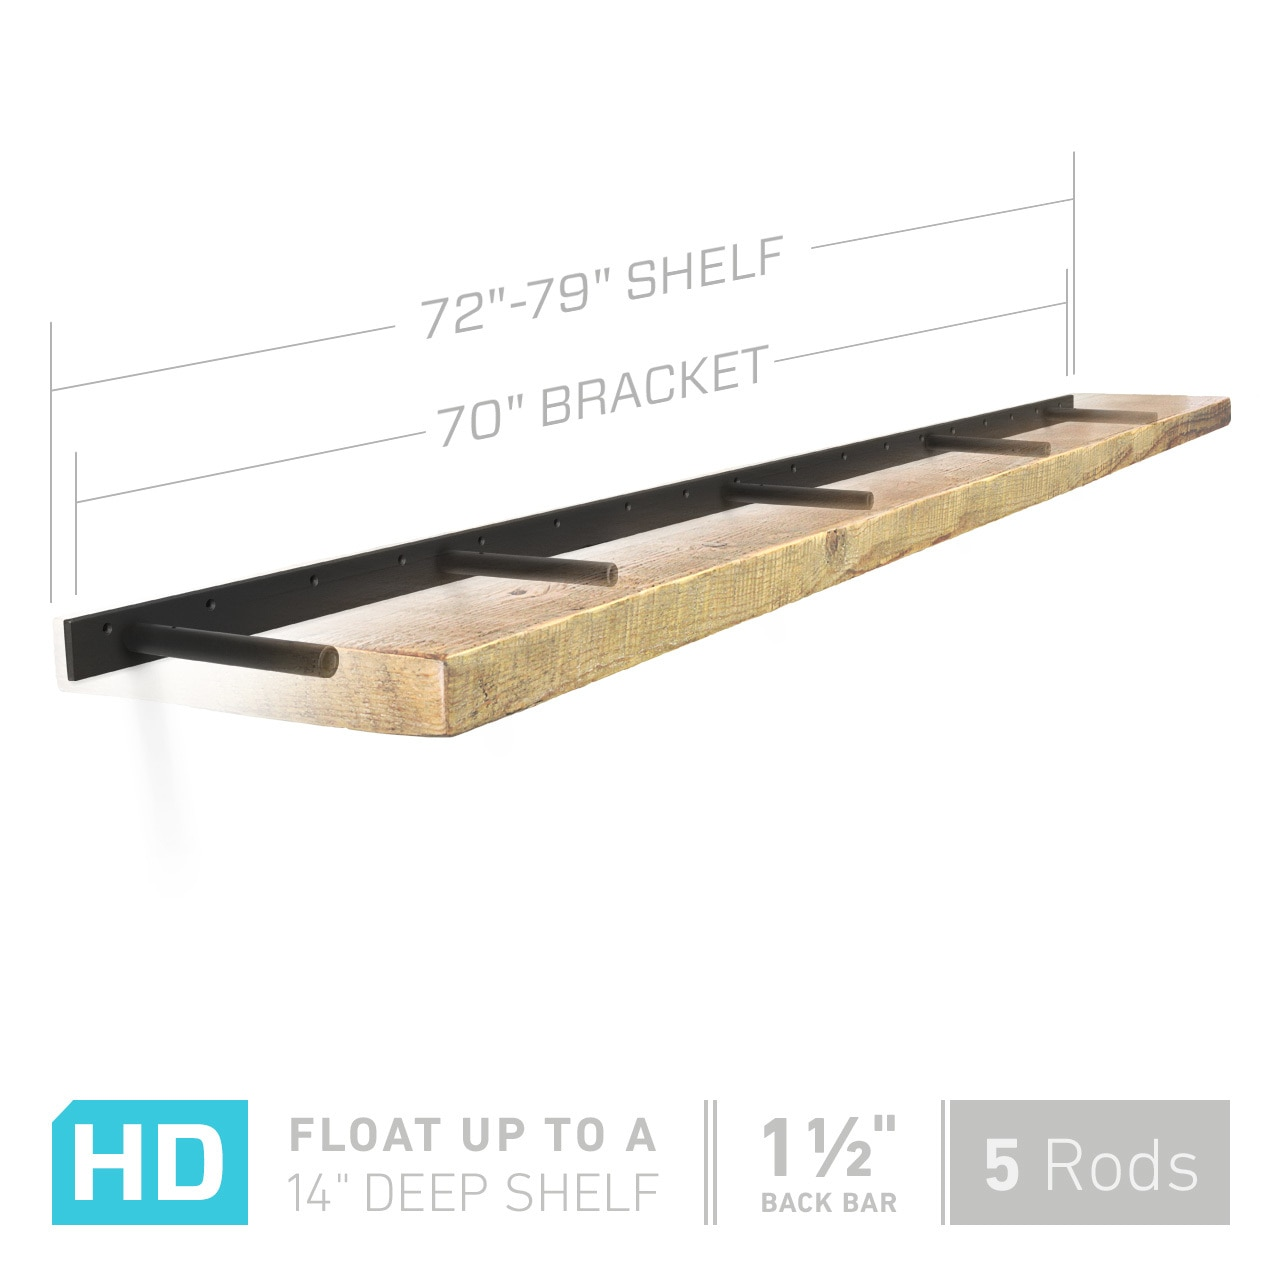 heavy duty floating shelf bracket fits inch shelves dimensions large brackets manufactured that hold real weight use these hidden for your plain wall ikea kallax measurements